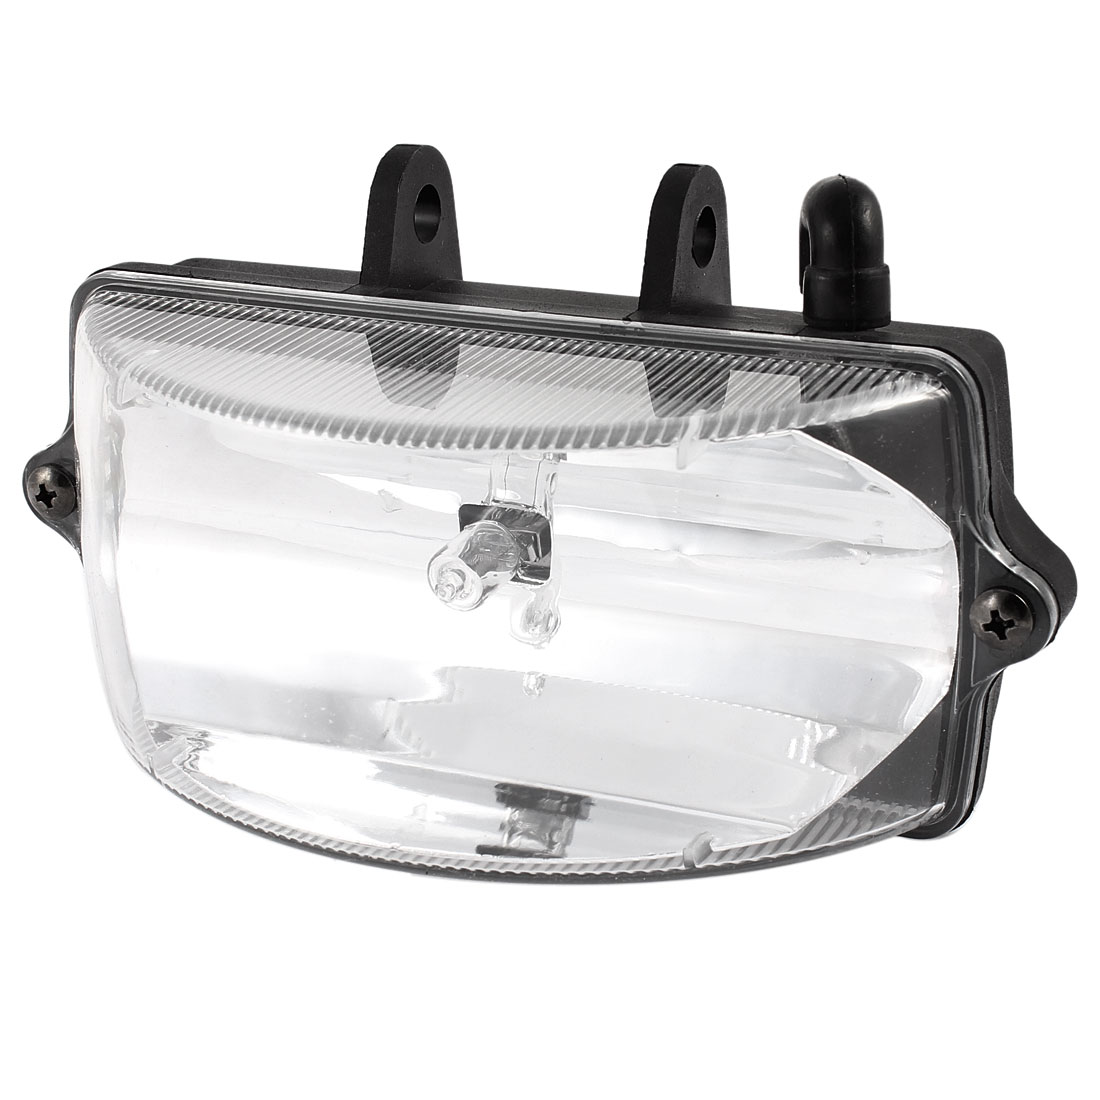 White Rectangular Shape Halogen Fog Light Driving Lamp Bulb